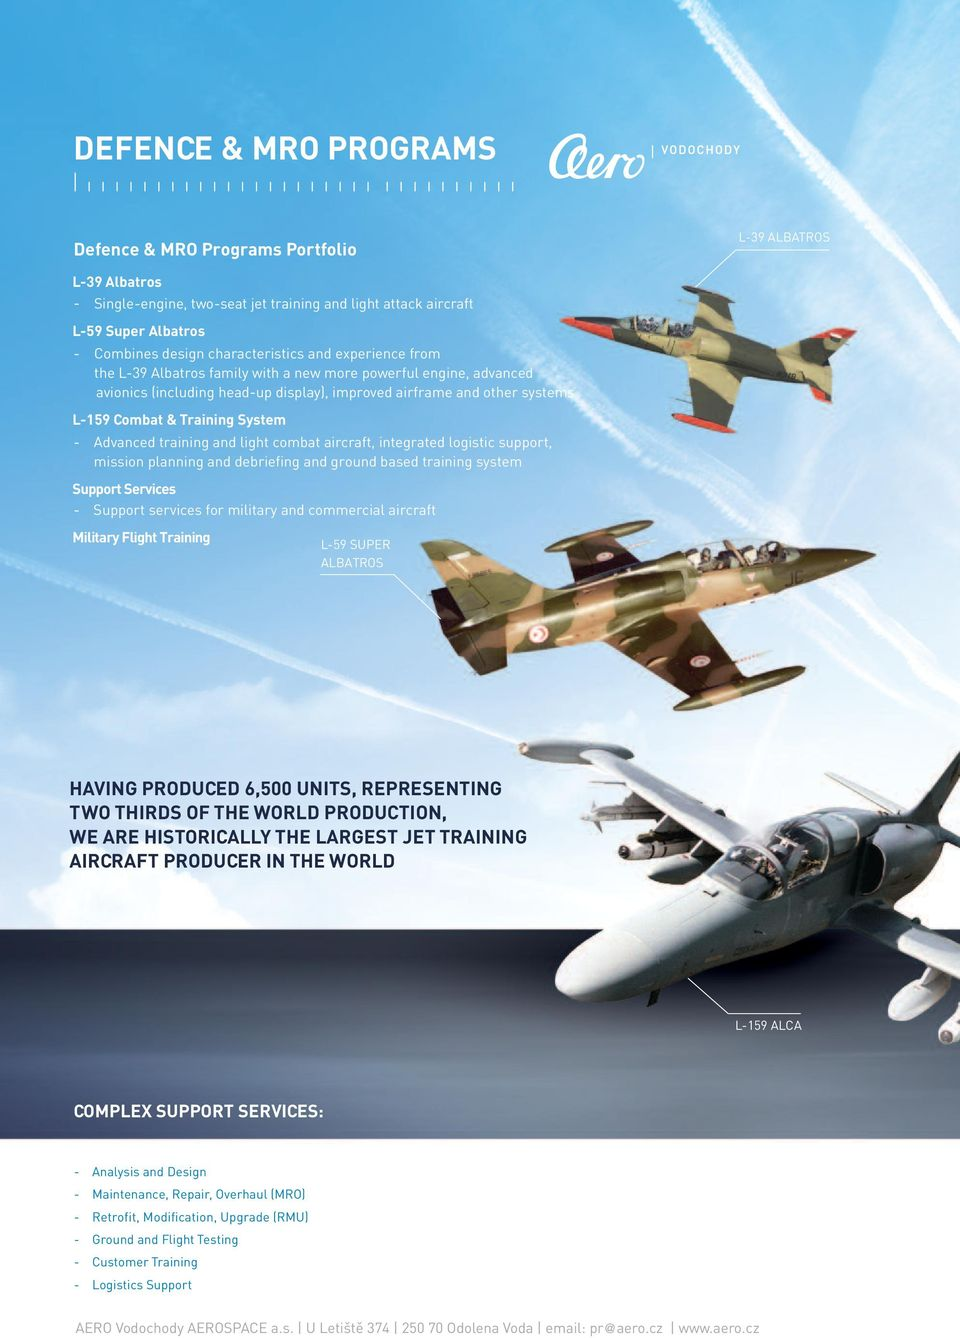 Training System - Advanced training and light combat aircraft, integrated logistic support, mission planning and debriefing and ground based training system Support Services - Support services for